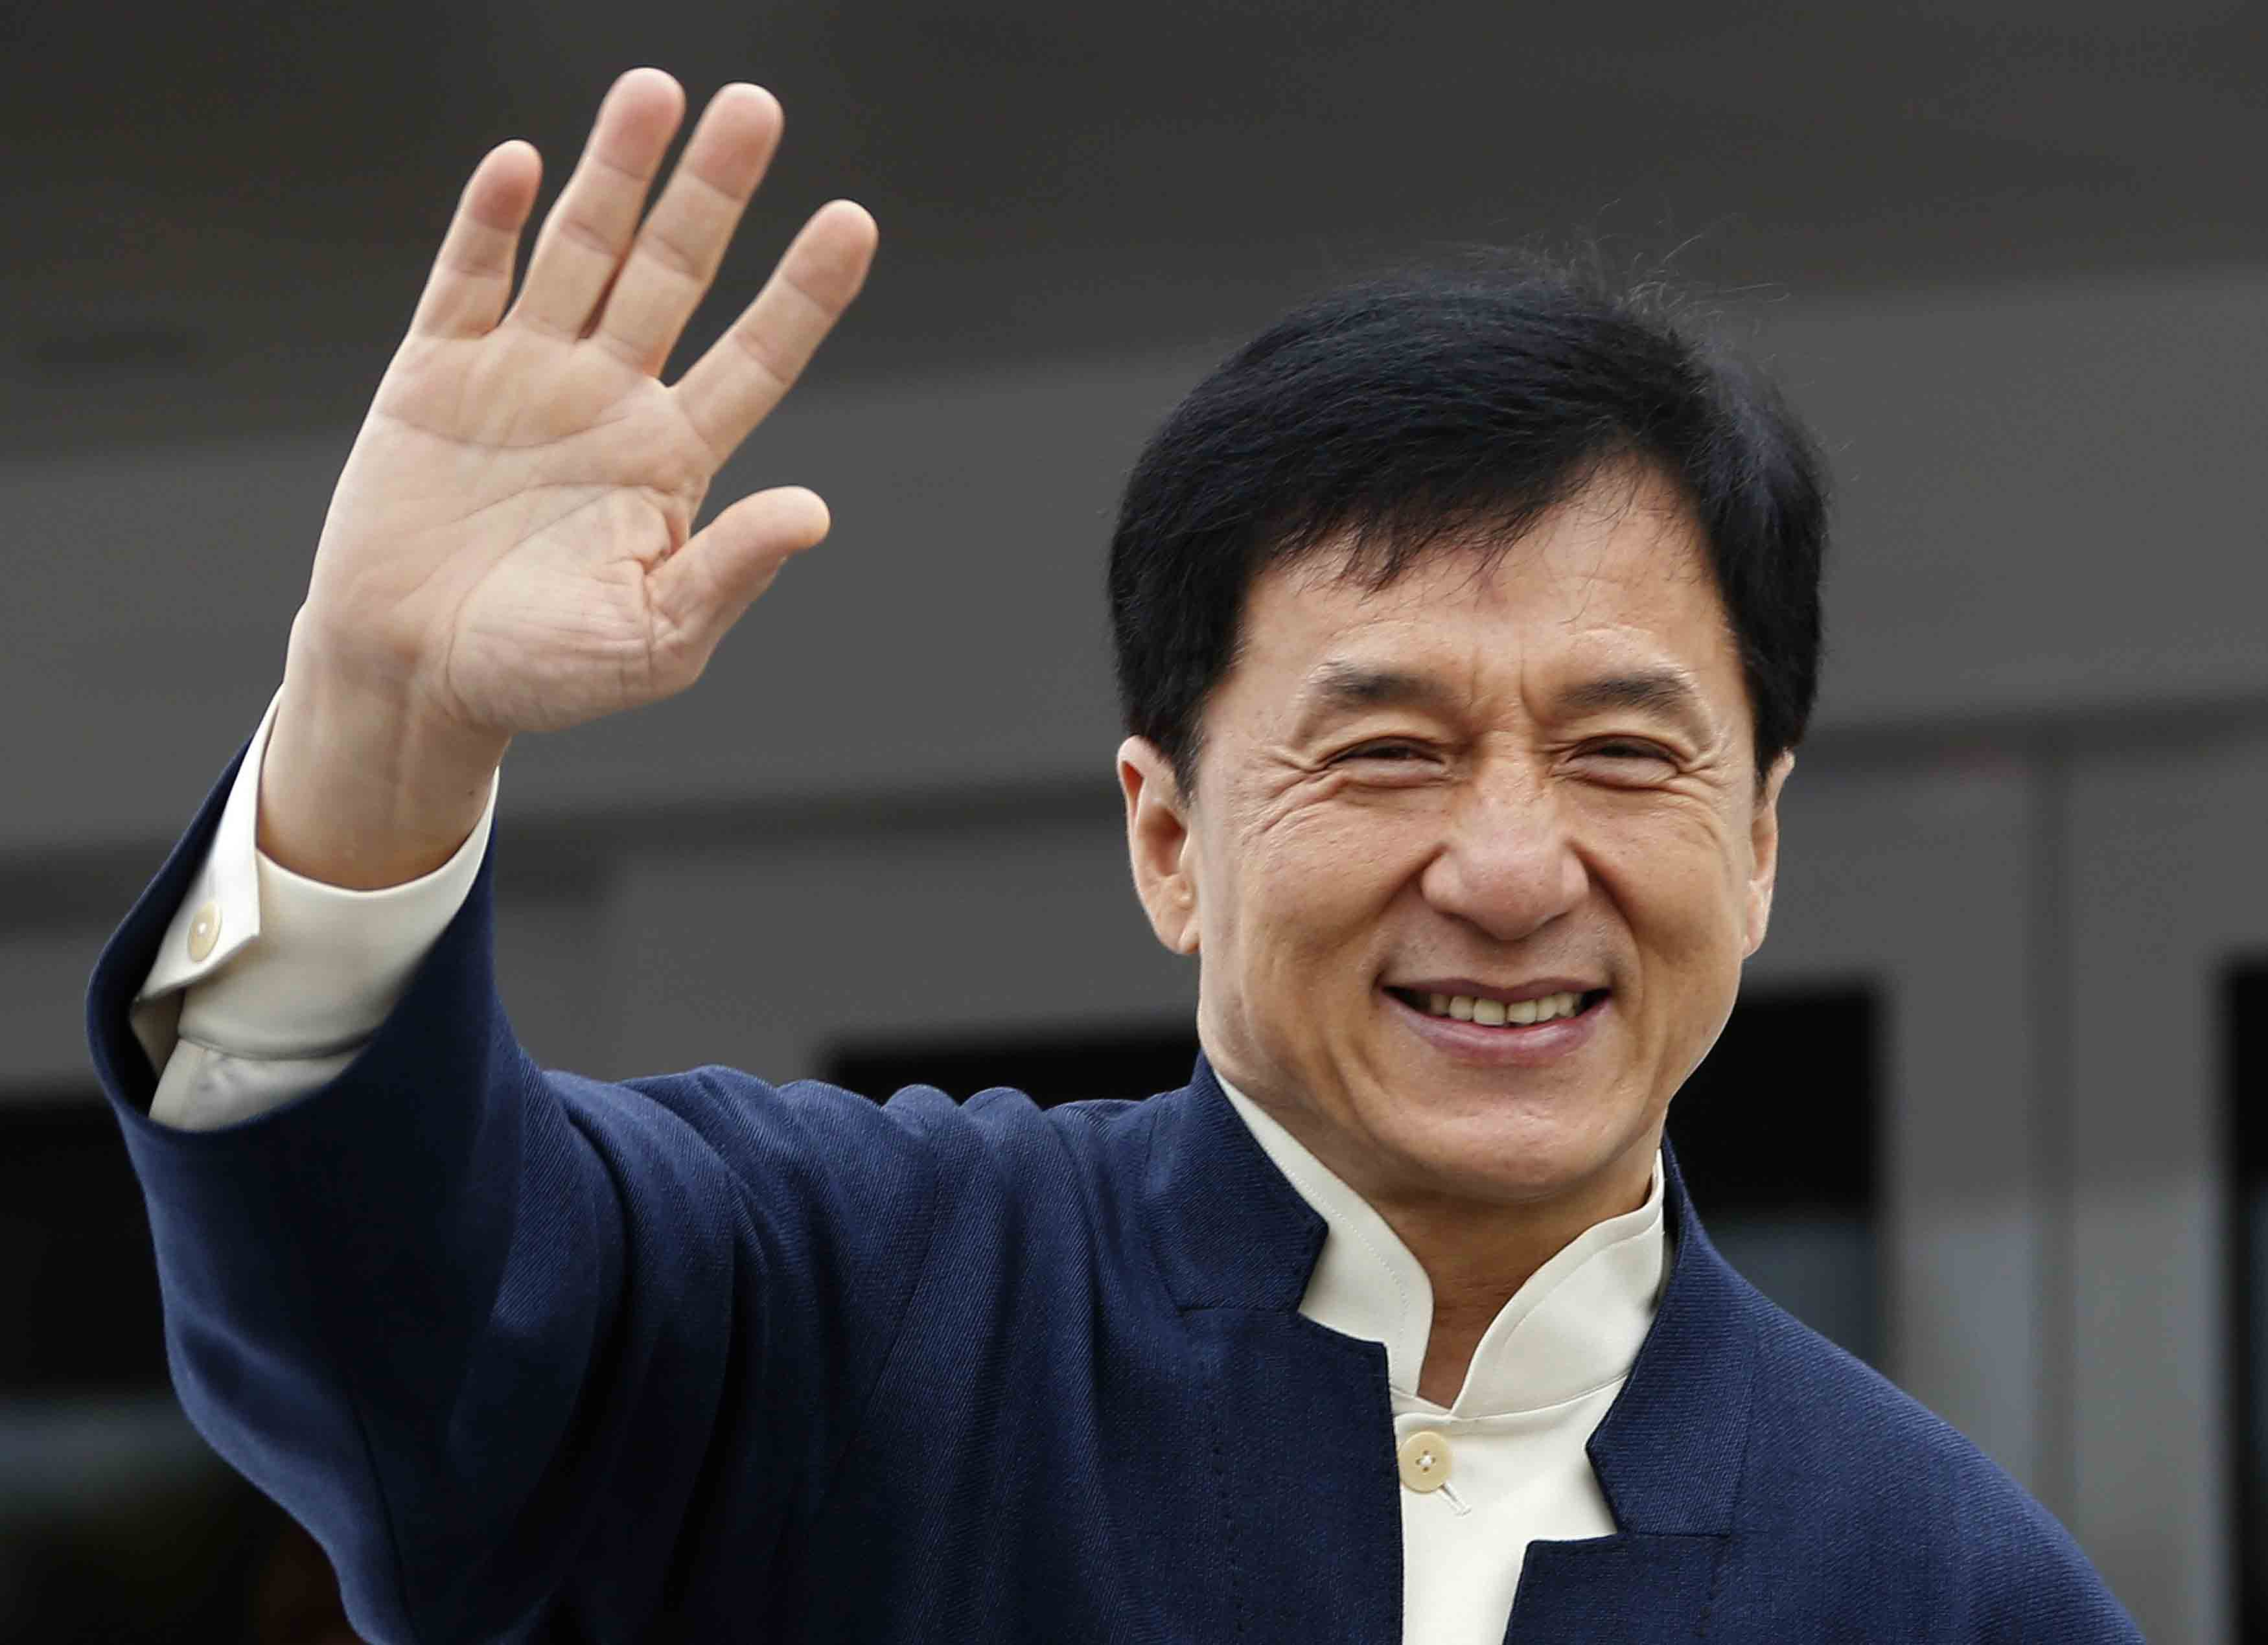 Actor Jackie Chan poses on a yatch during a photocall for the film 'Skiptrace' at the 66th Cannes Film Festival in Cannes May 16, 2013. REUTERS/Eric Gaillard (FRANCE - Tags: ENTERTAINMENT HEADSHOT) - RTXZOUW